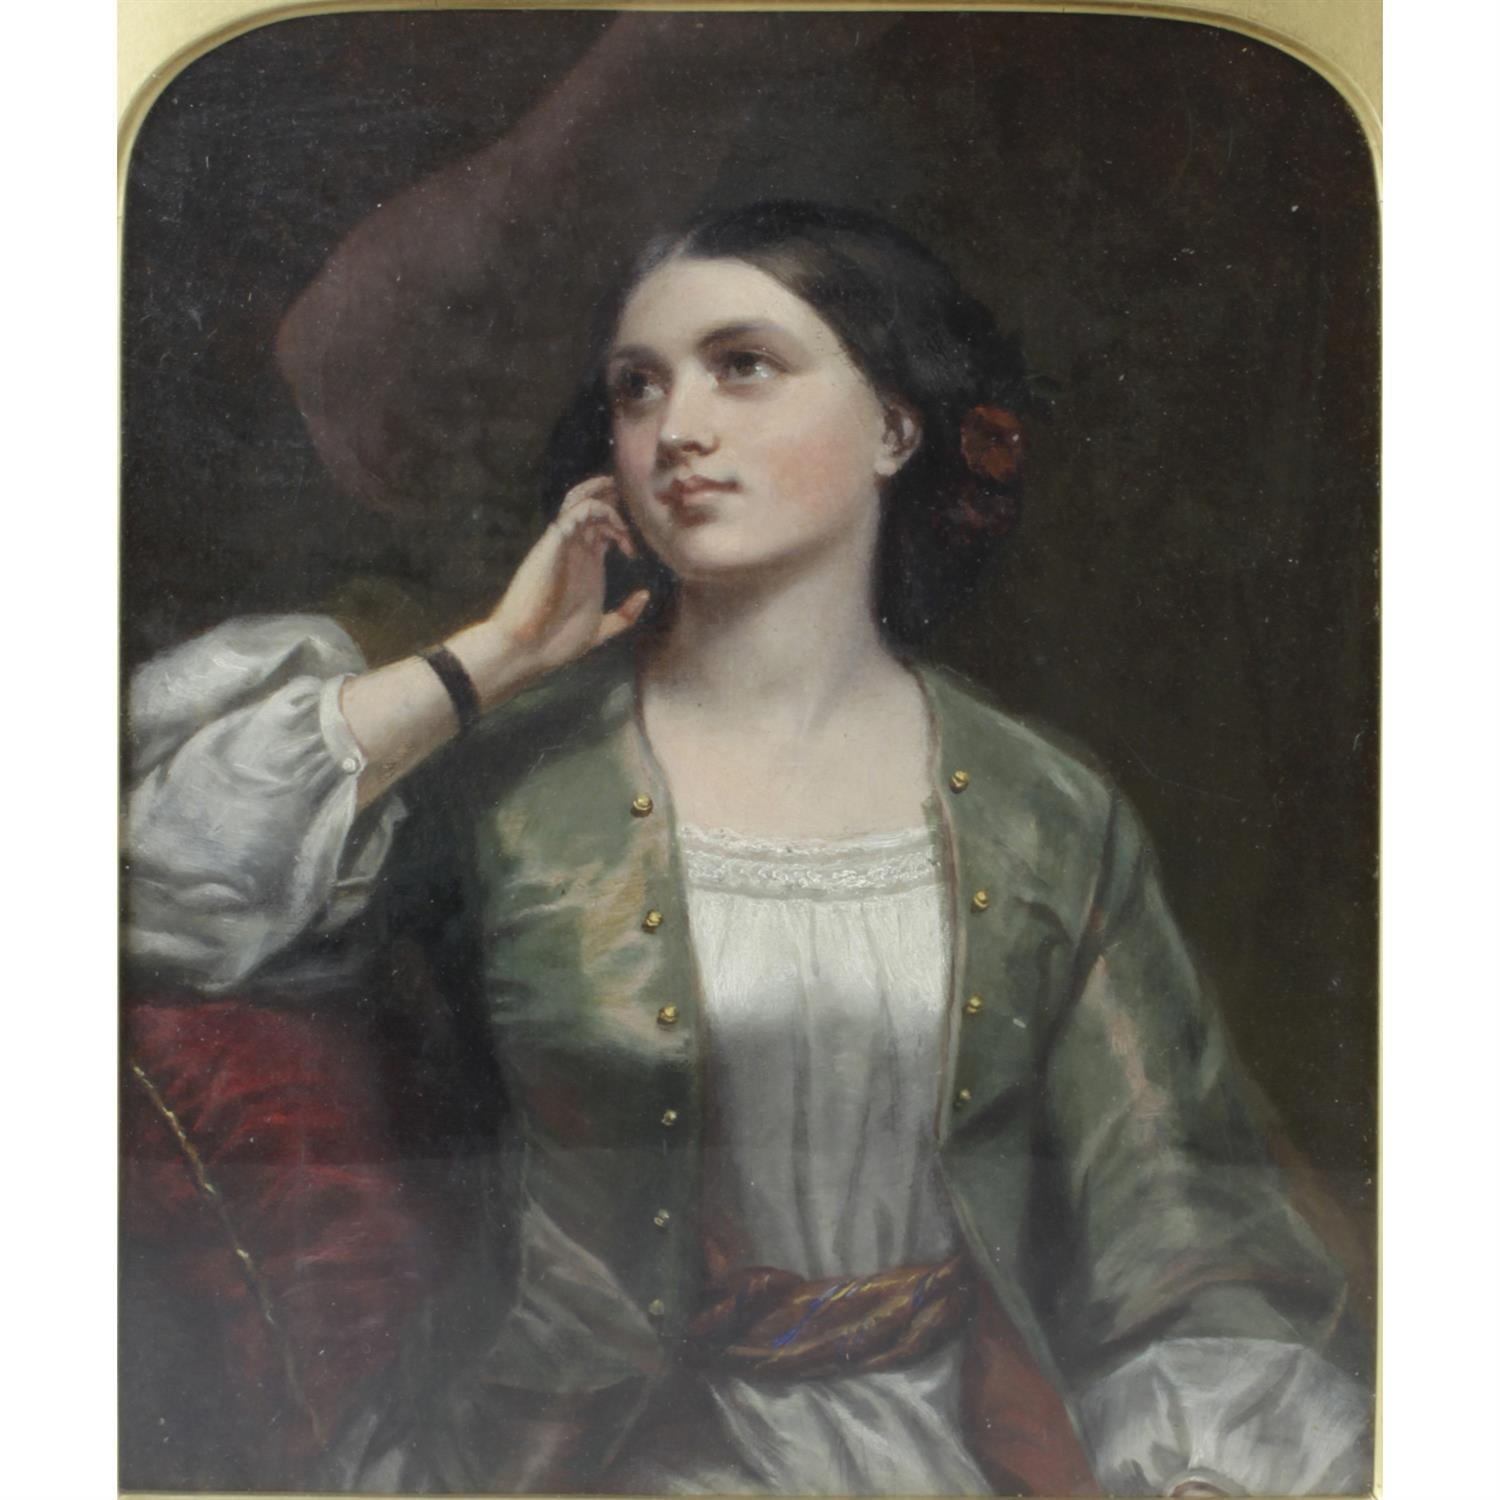 19th century oil painting on canvas, half length portrait of a young lady